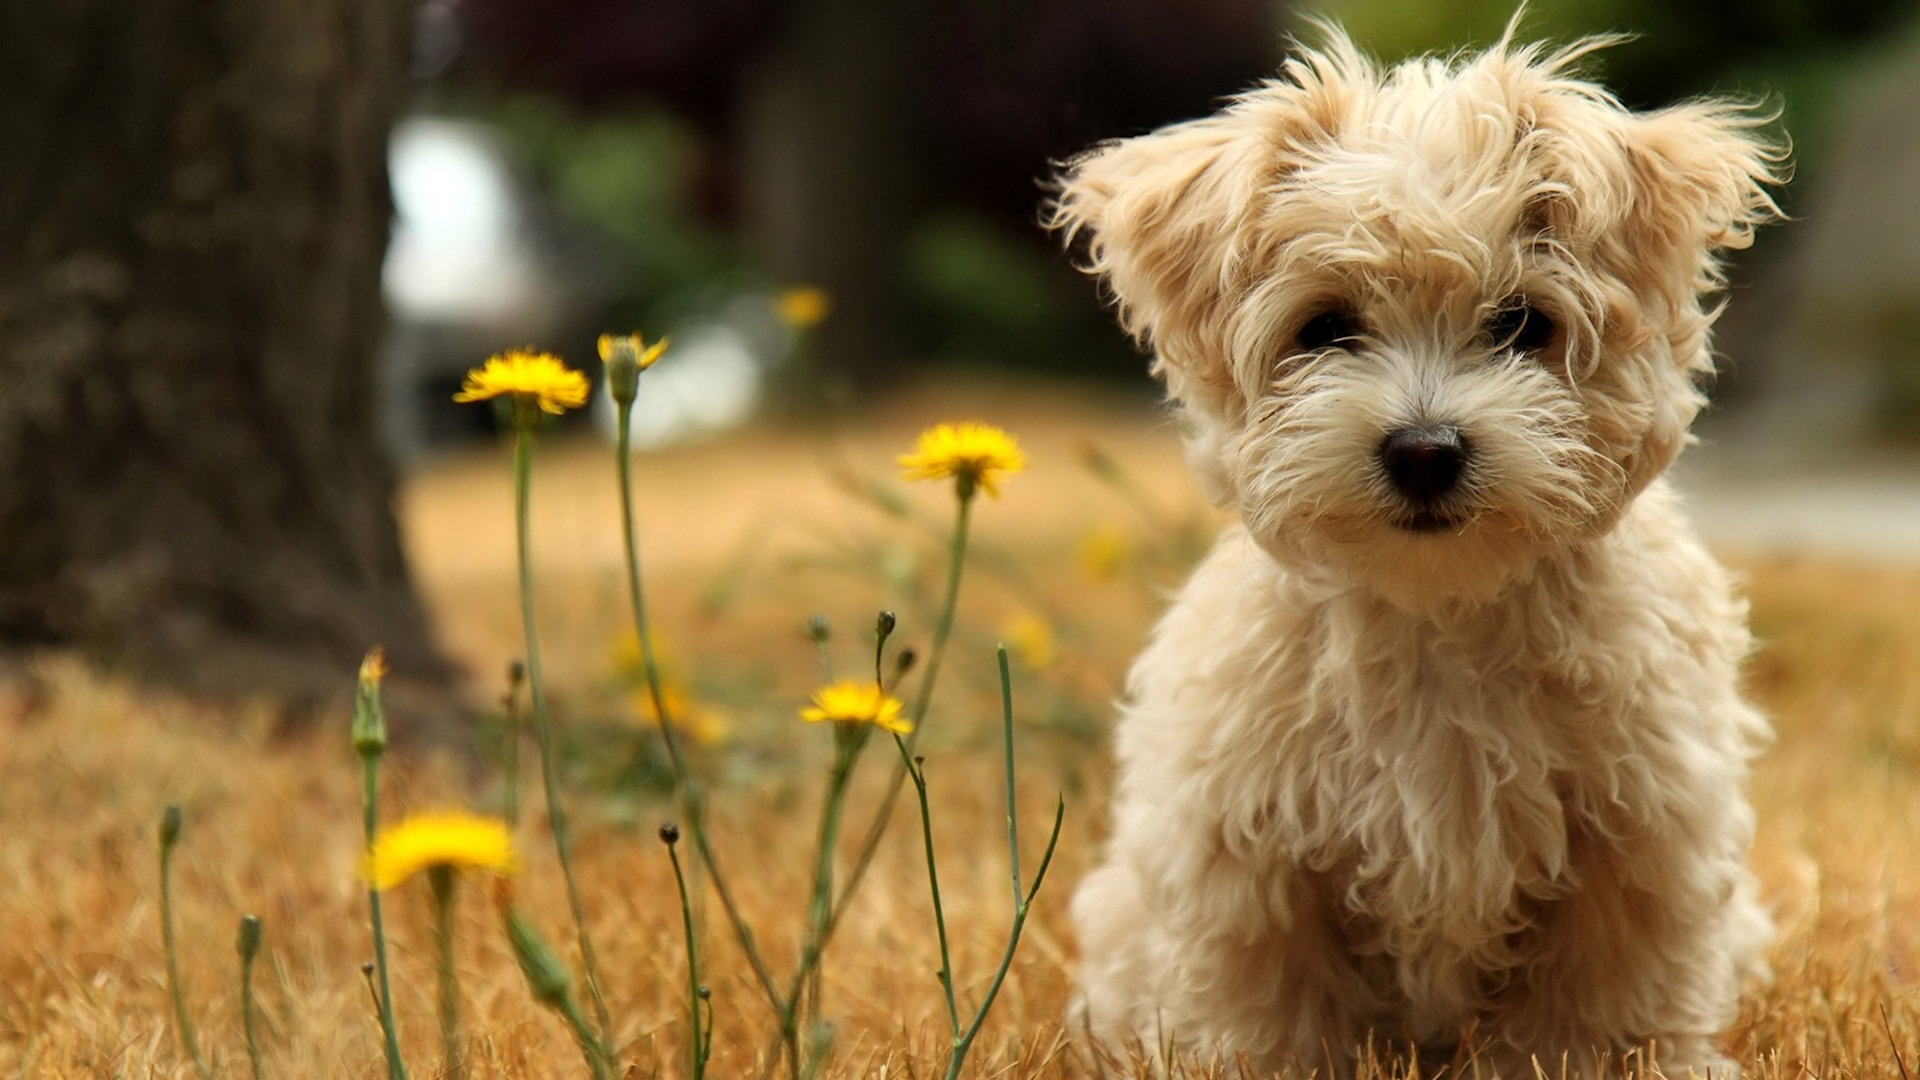 Awesome Dog Wallpapers